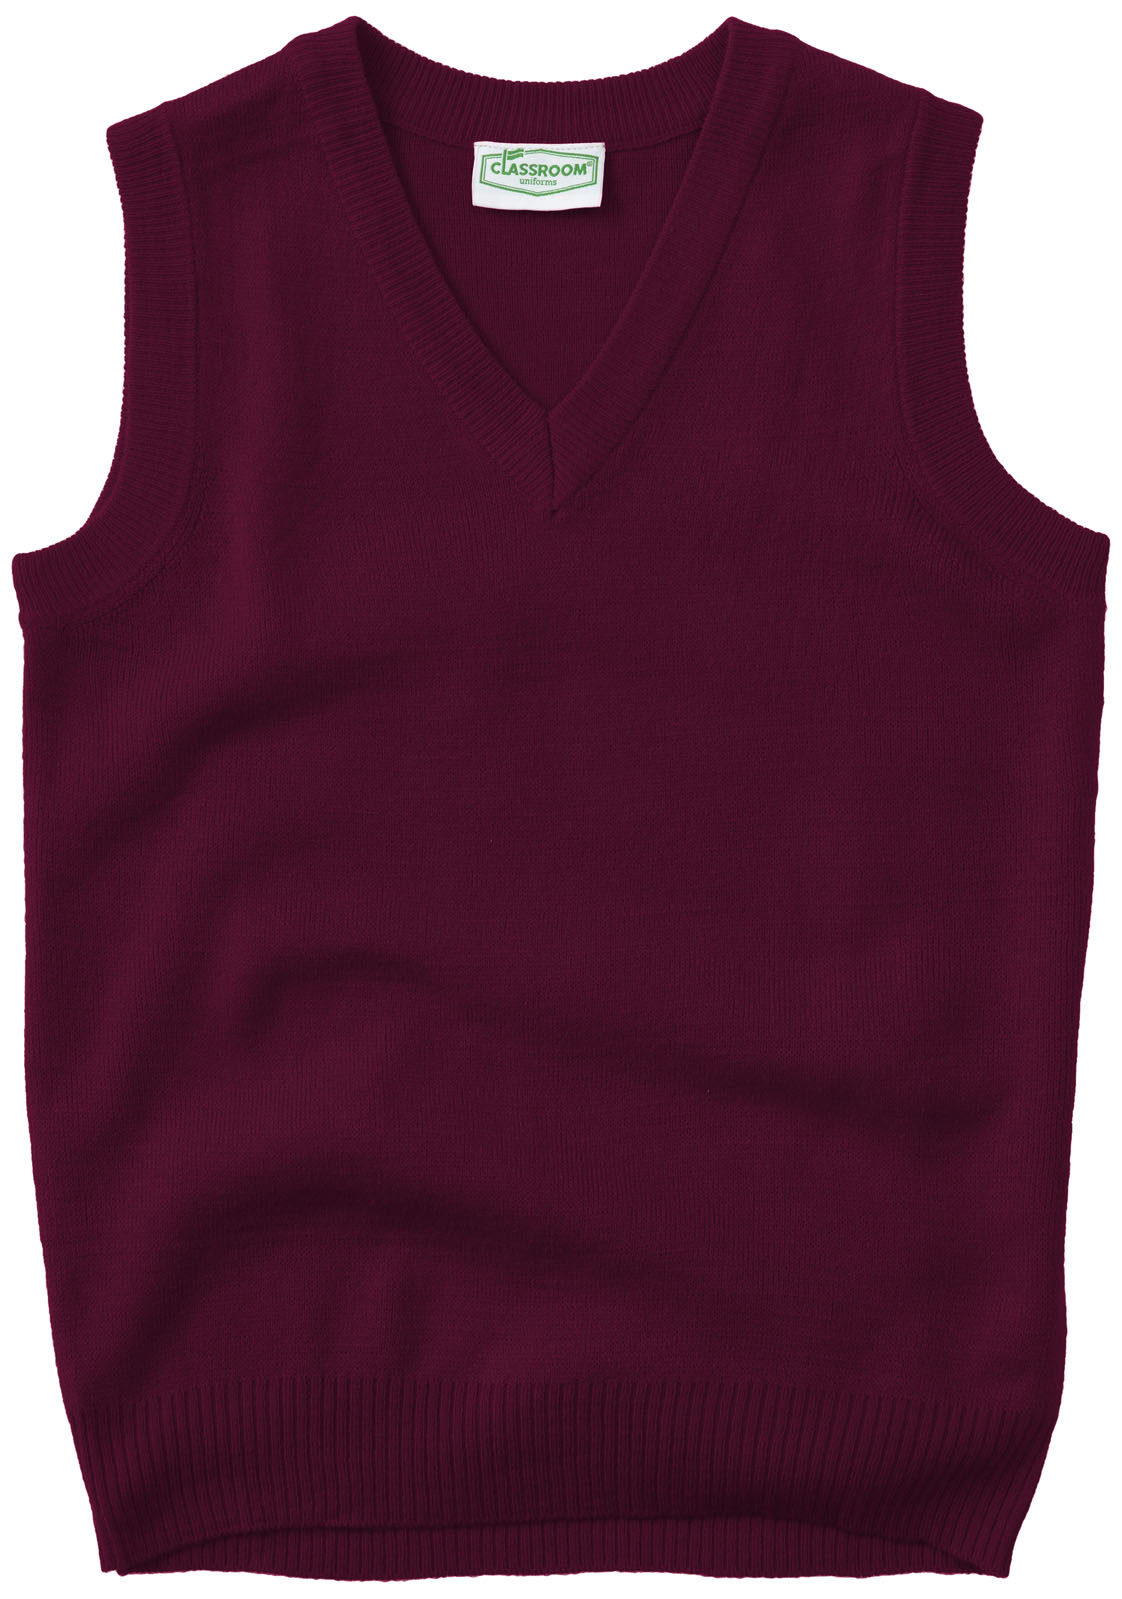 Classroom Adult Unisex V-Neck Sweater Vest 56914-BUR from Cedar ...